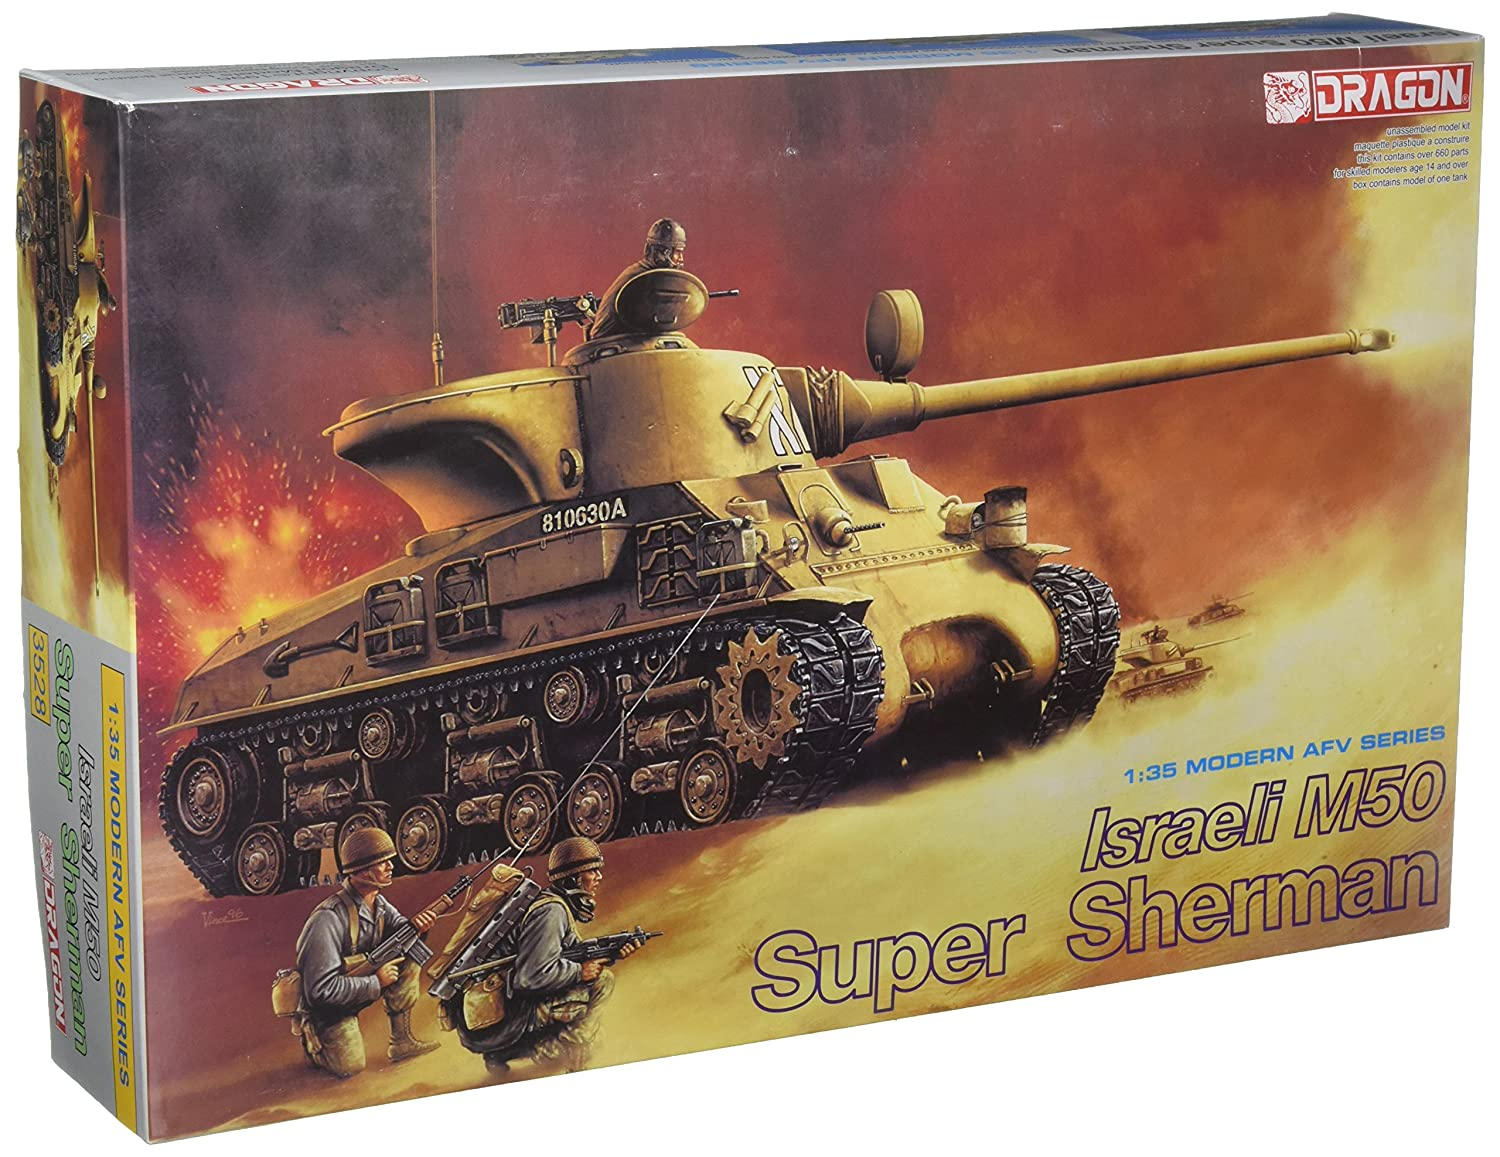 Dragon Models Israeli M50 Super Sherman Model Kit